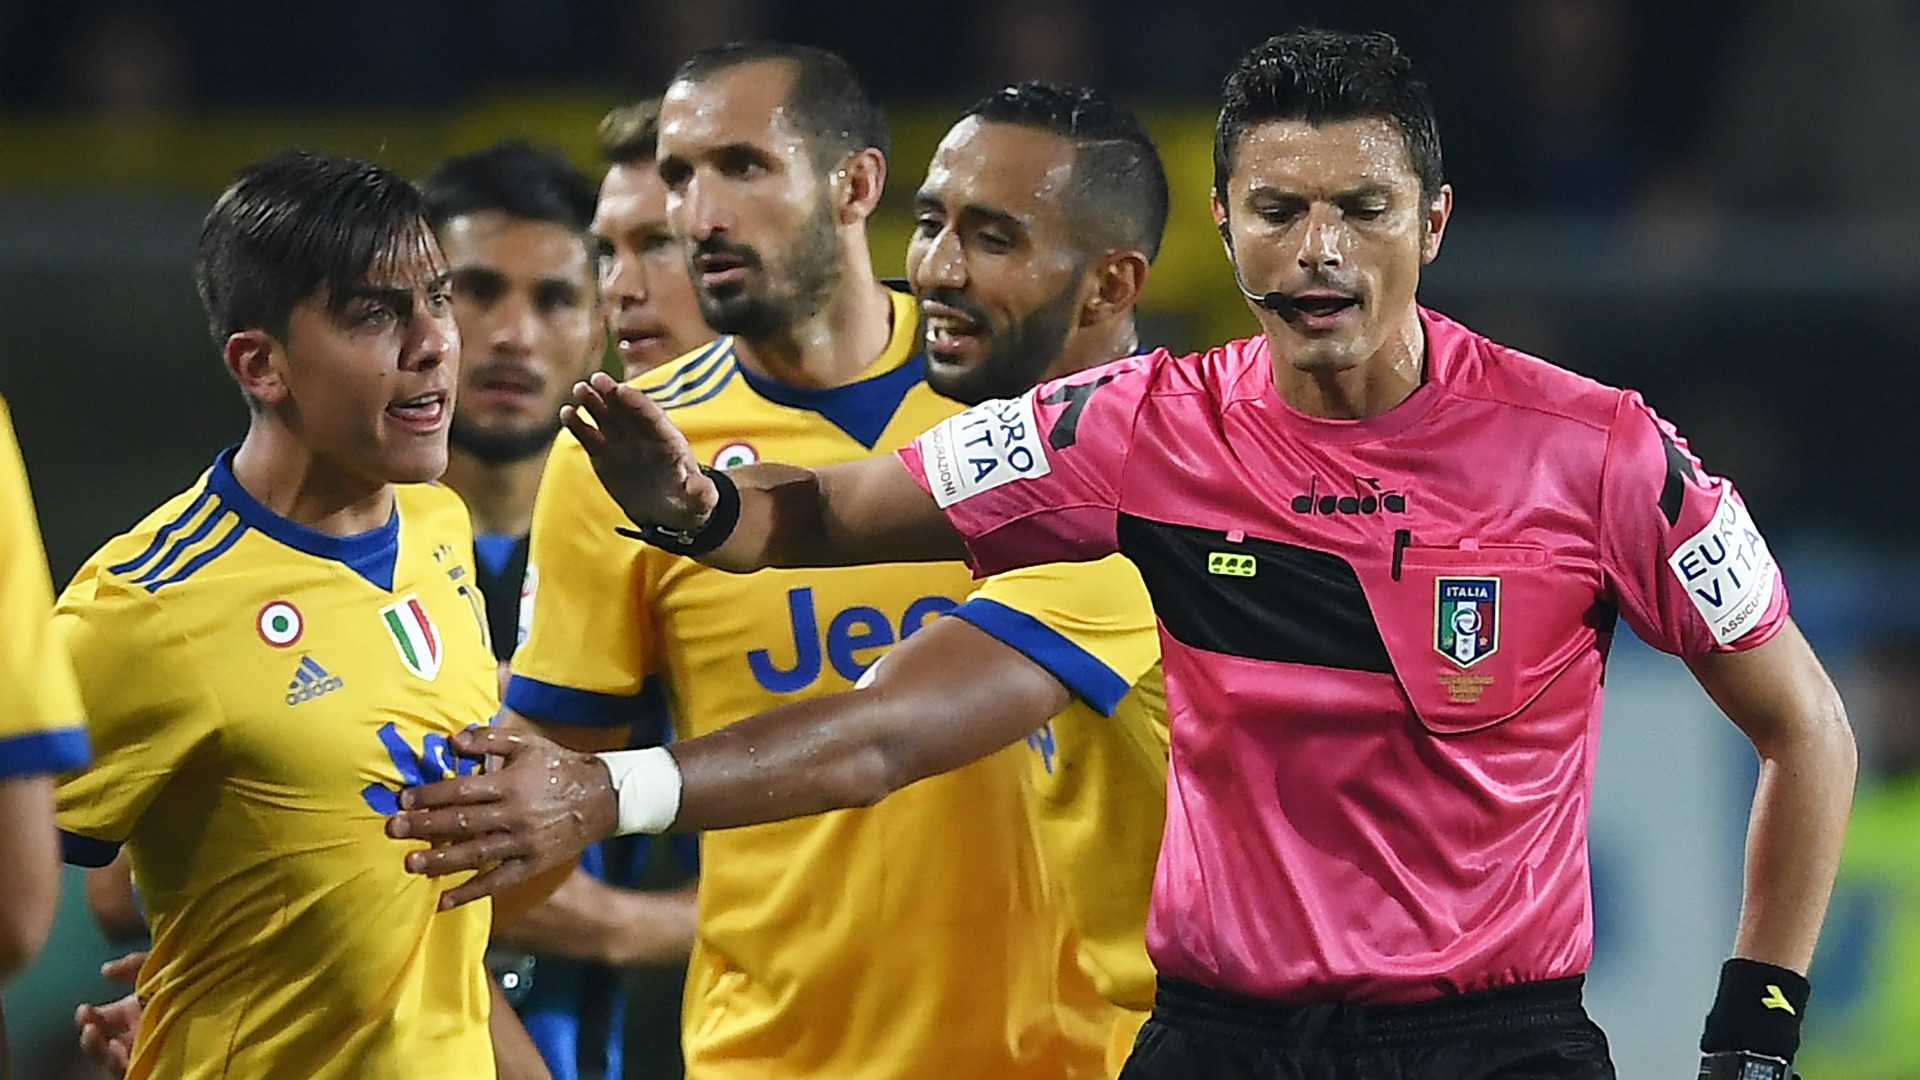 Juventus referee